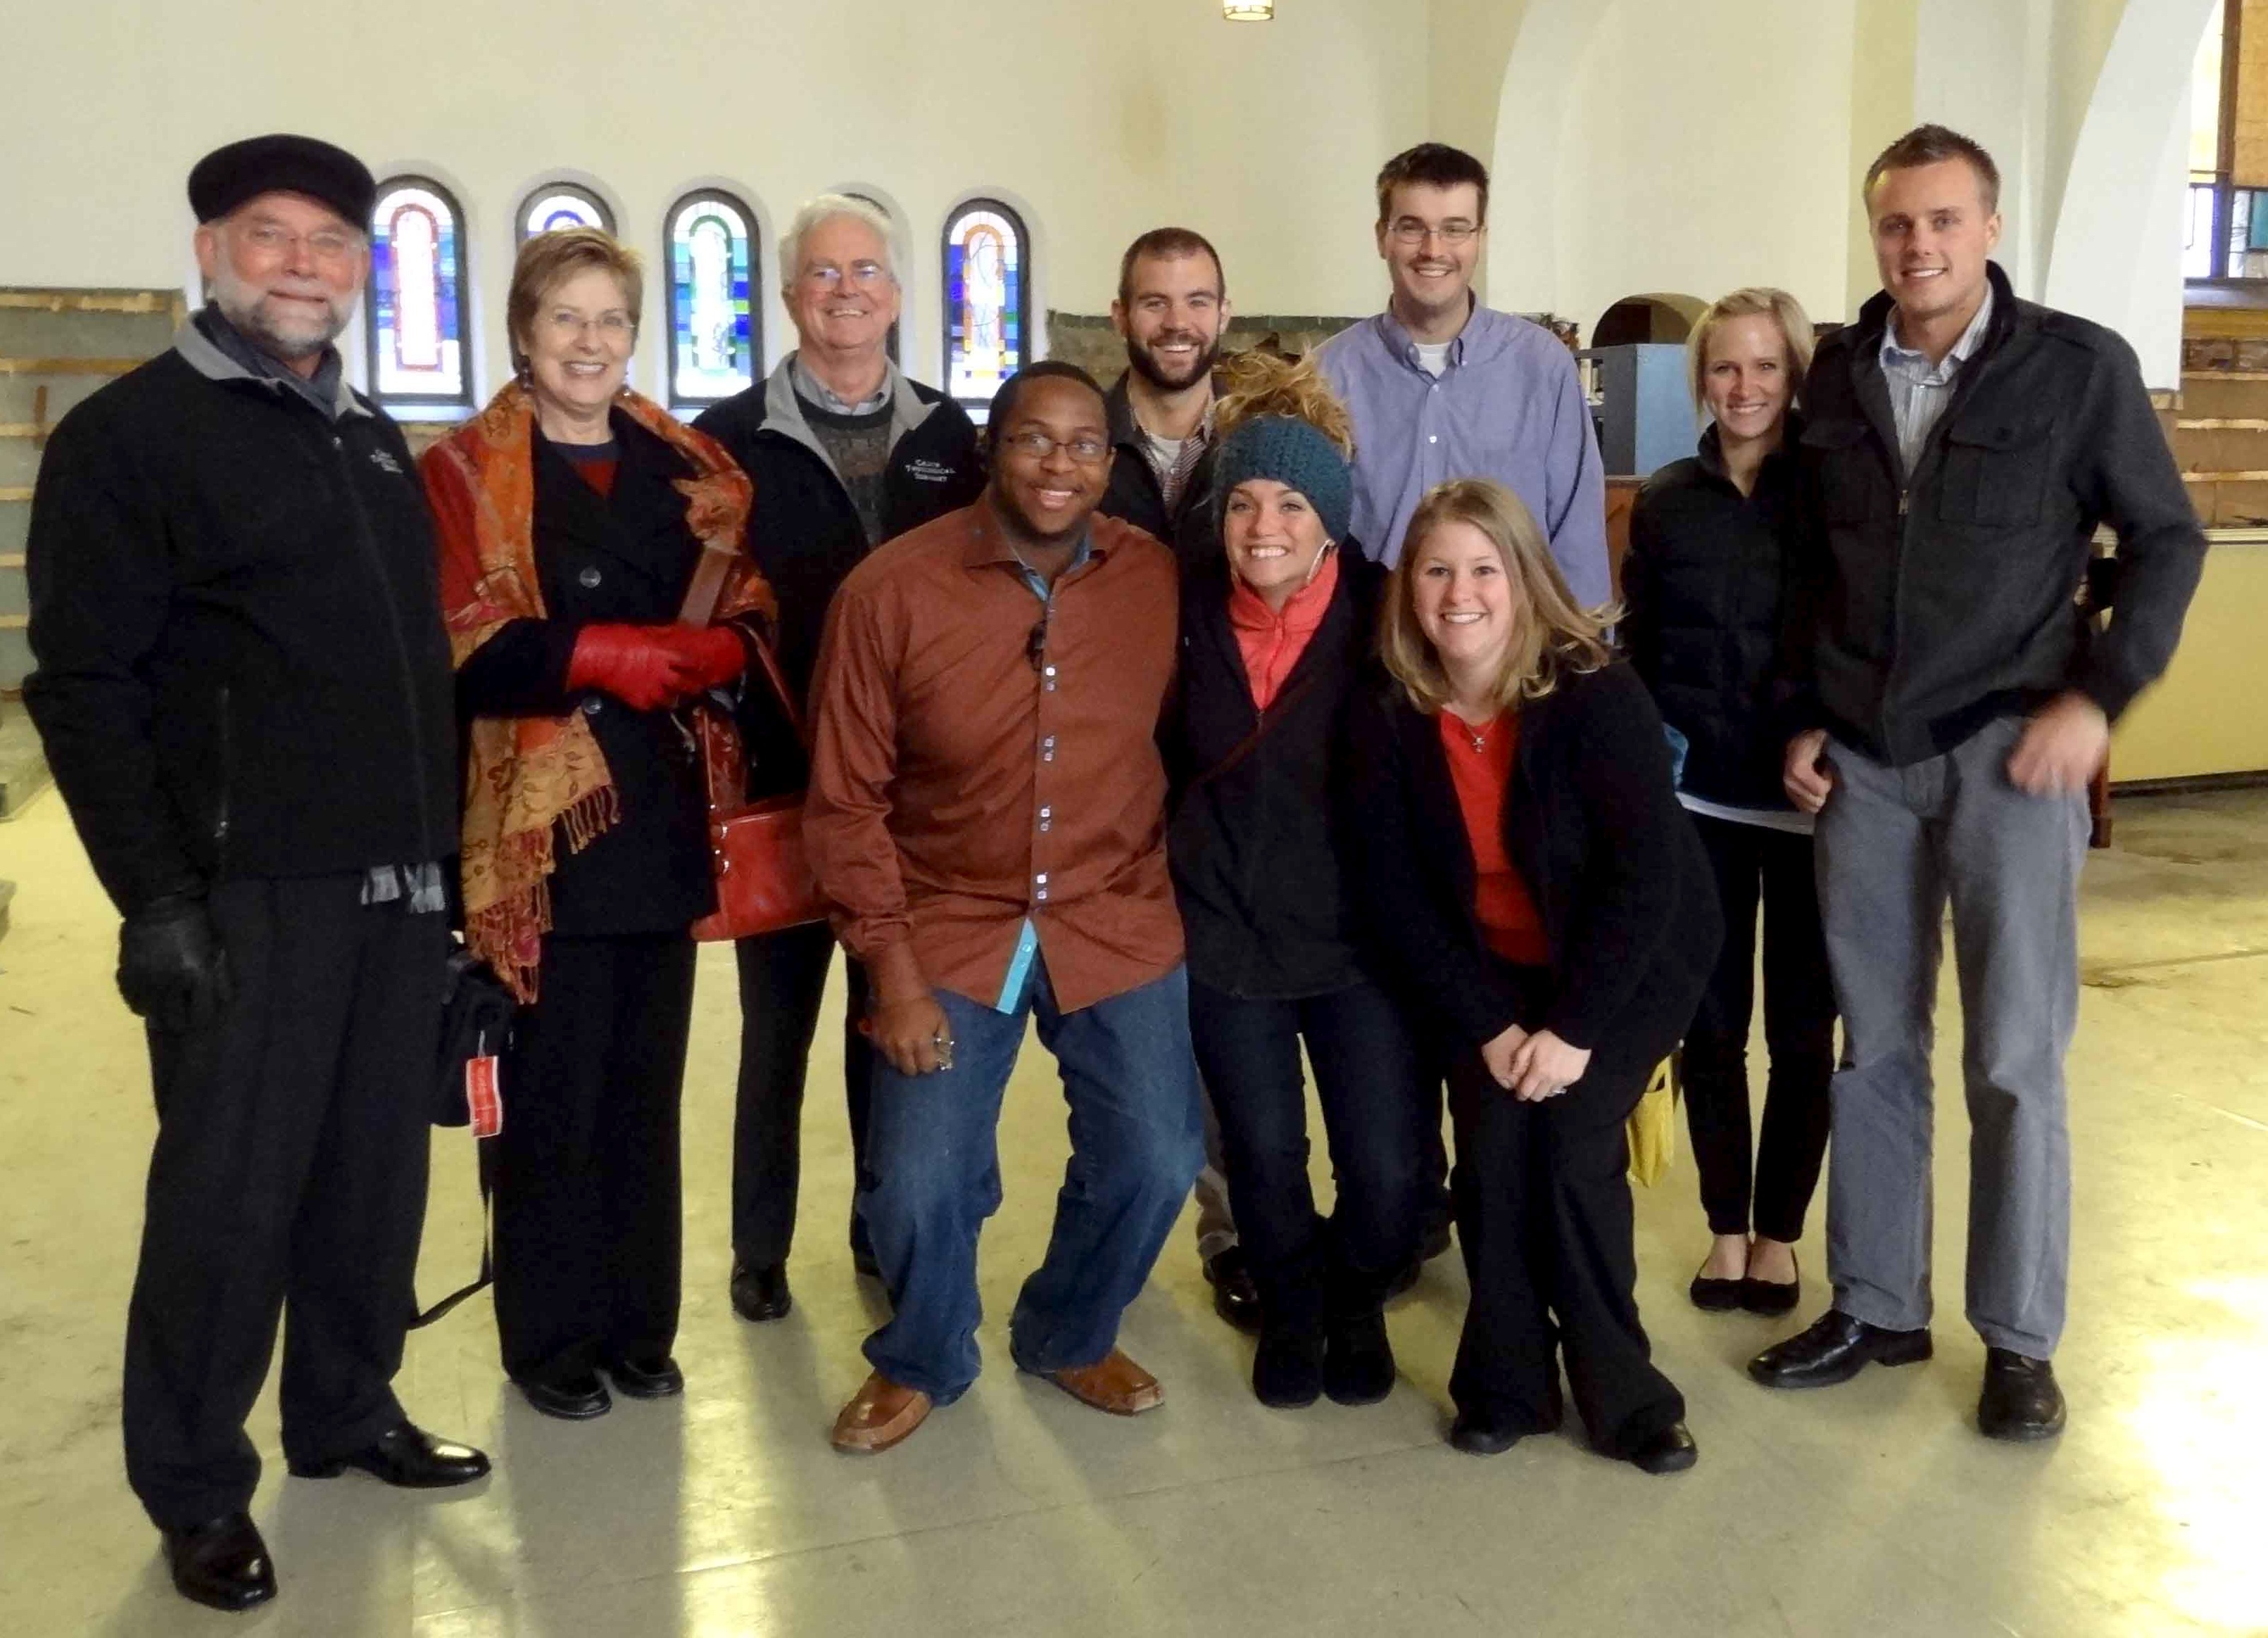 New Life at Citadel of Faith in Detroit